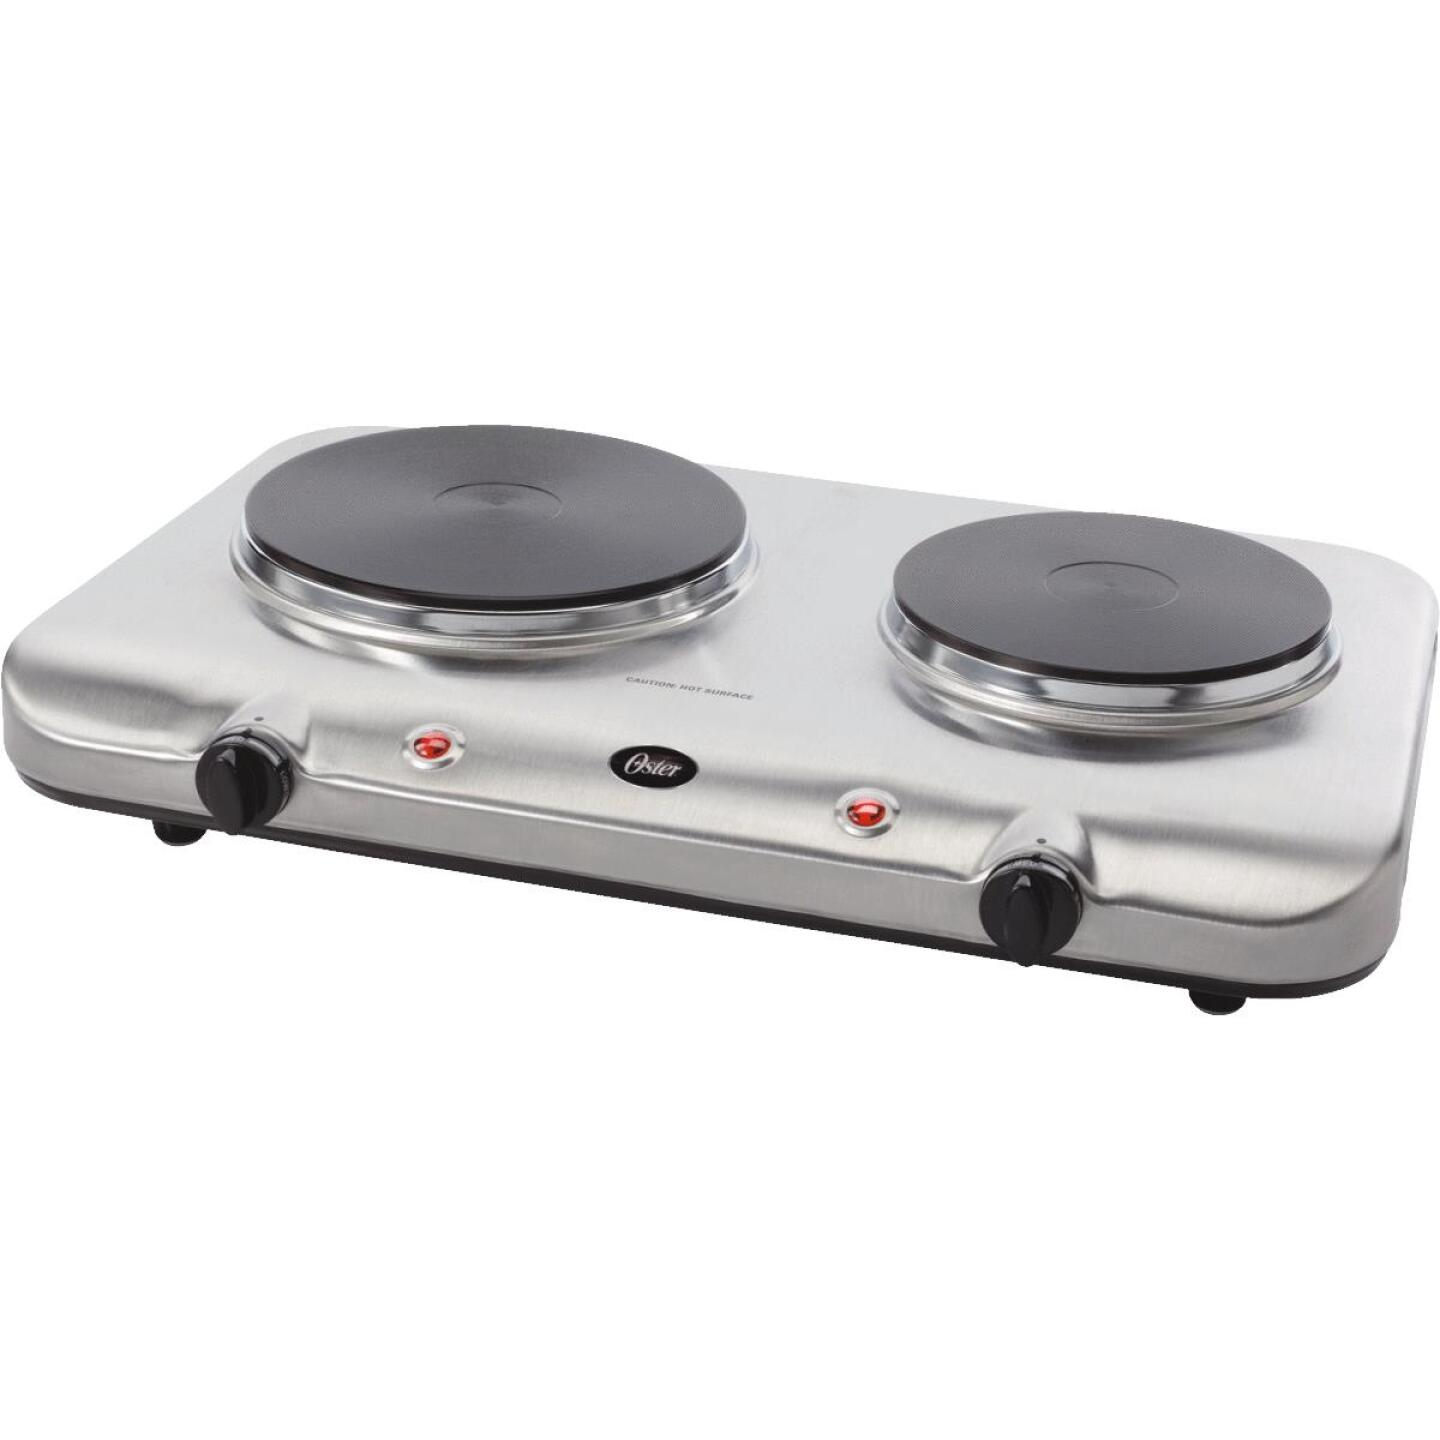 Oster Double Stainless Steel Burner Range Image 1